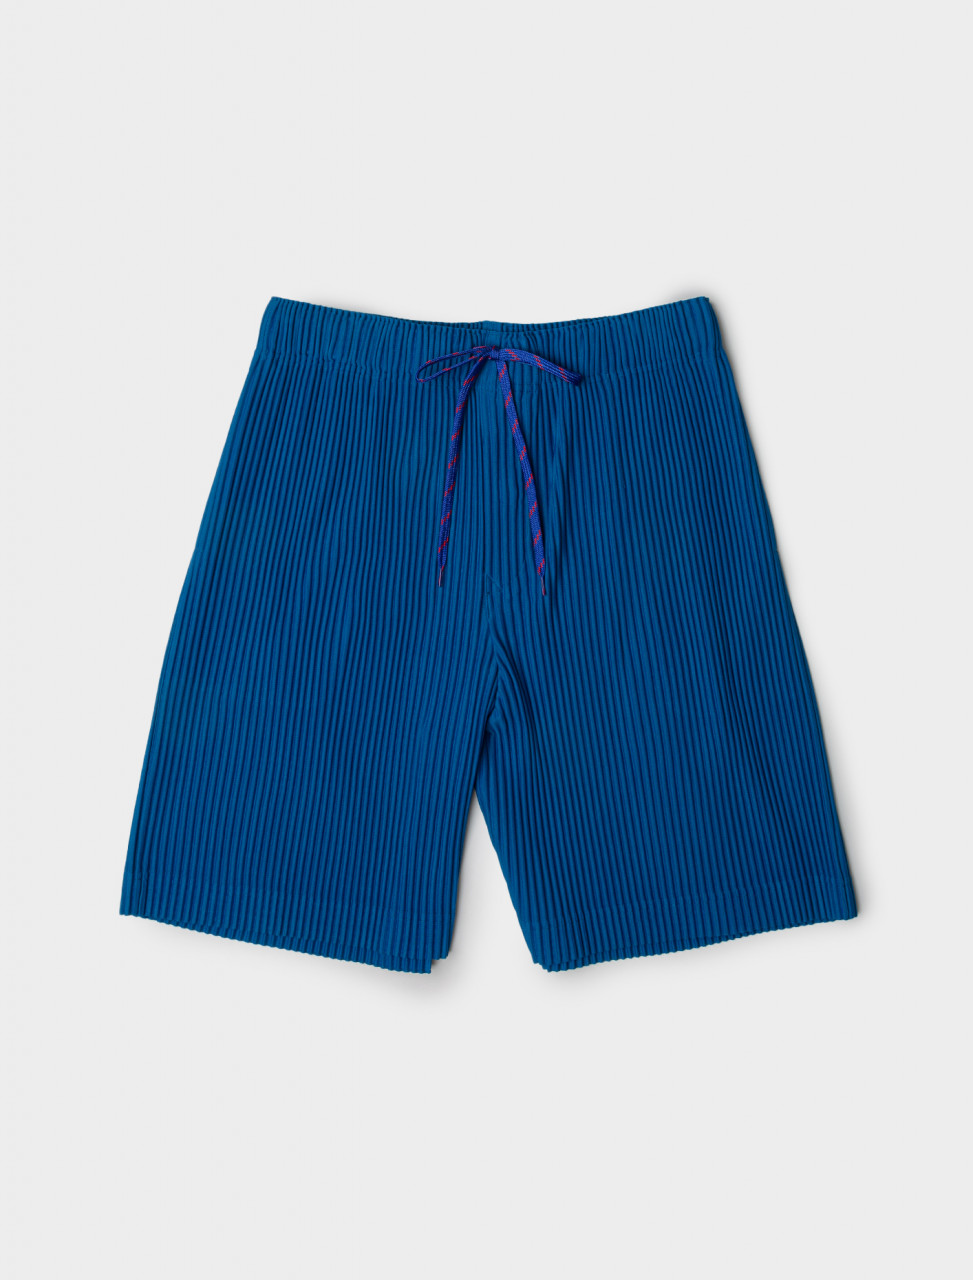 Front view of HOMME PLISSÉ Issey Miyake Drawstring Pleated Shorts in Blue